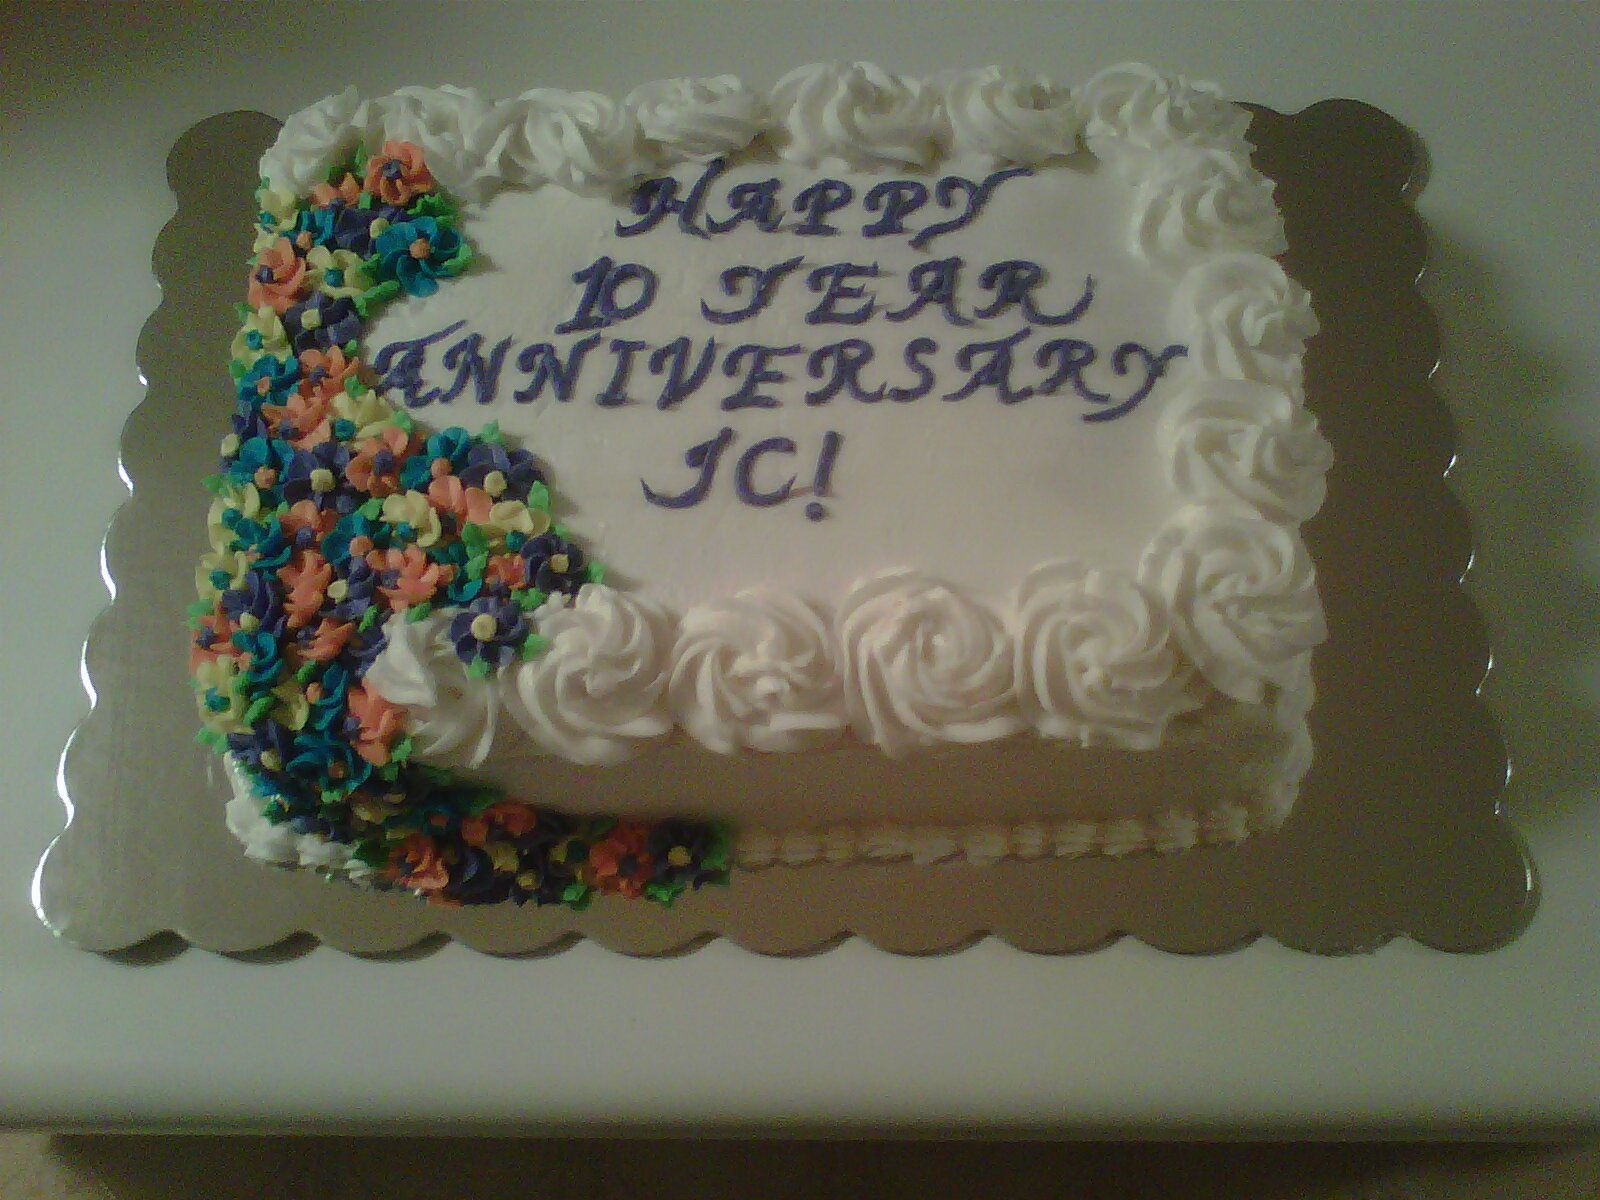 10 Year Work Anniversary Cake With Images Work Anniversary